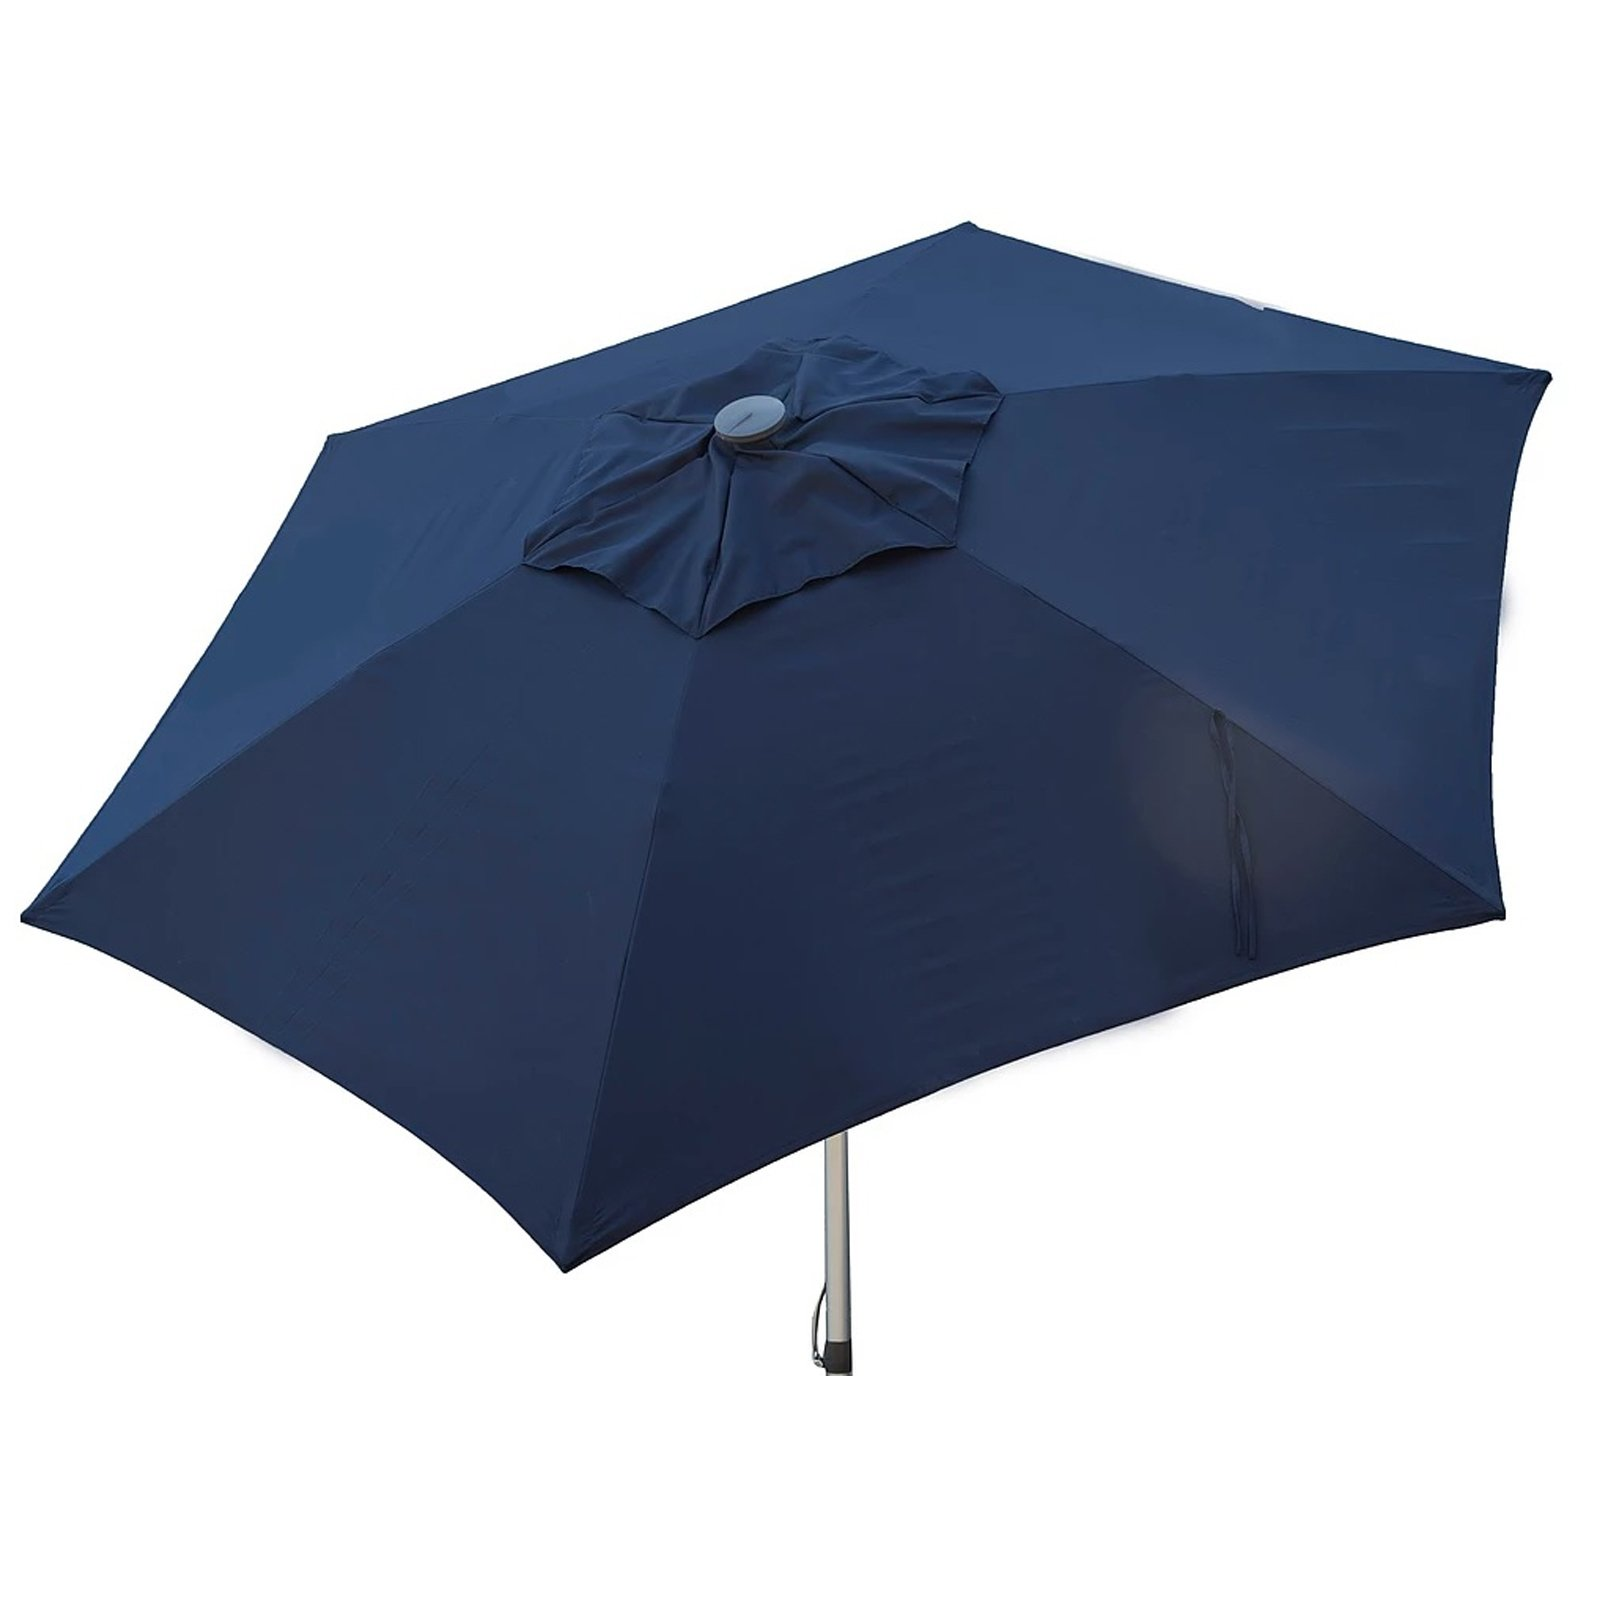 9ft Tilt Market Umbrella Home Patio Sun Shade Canopy- Navy